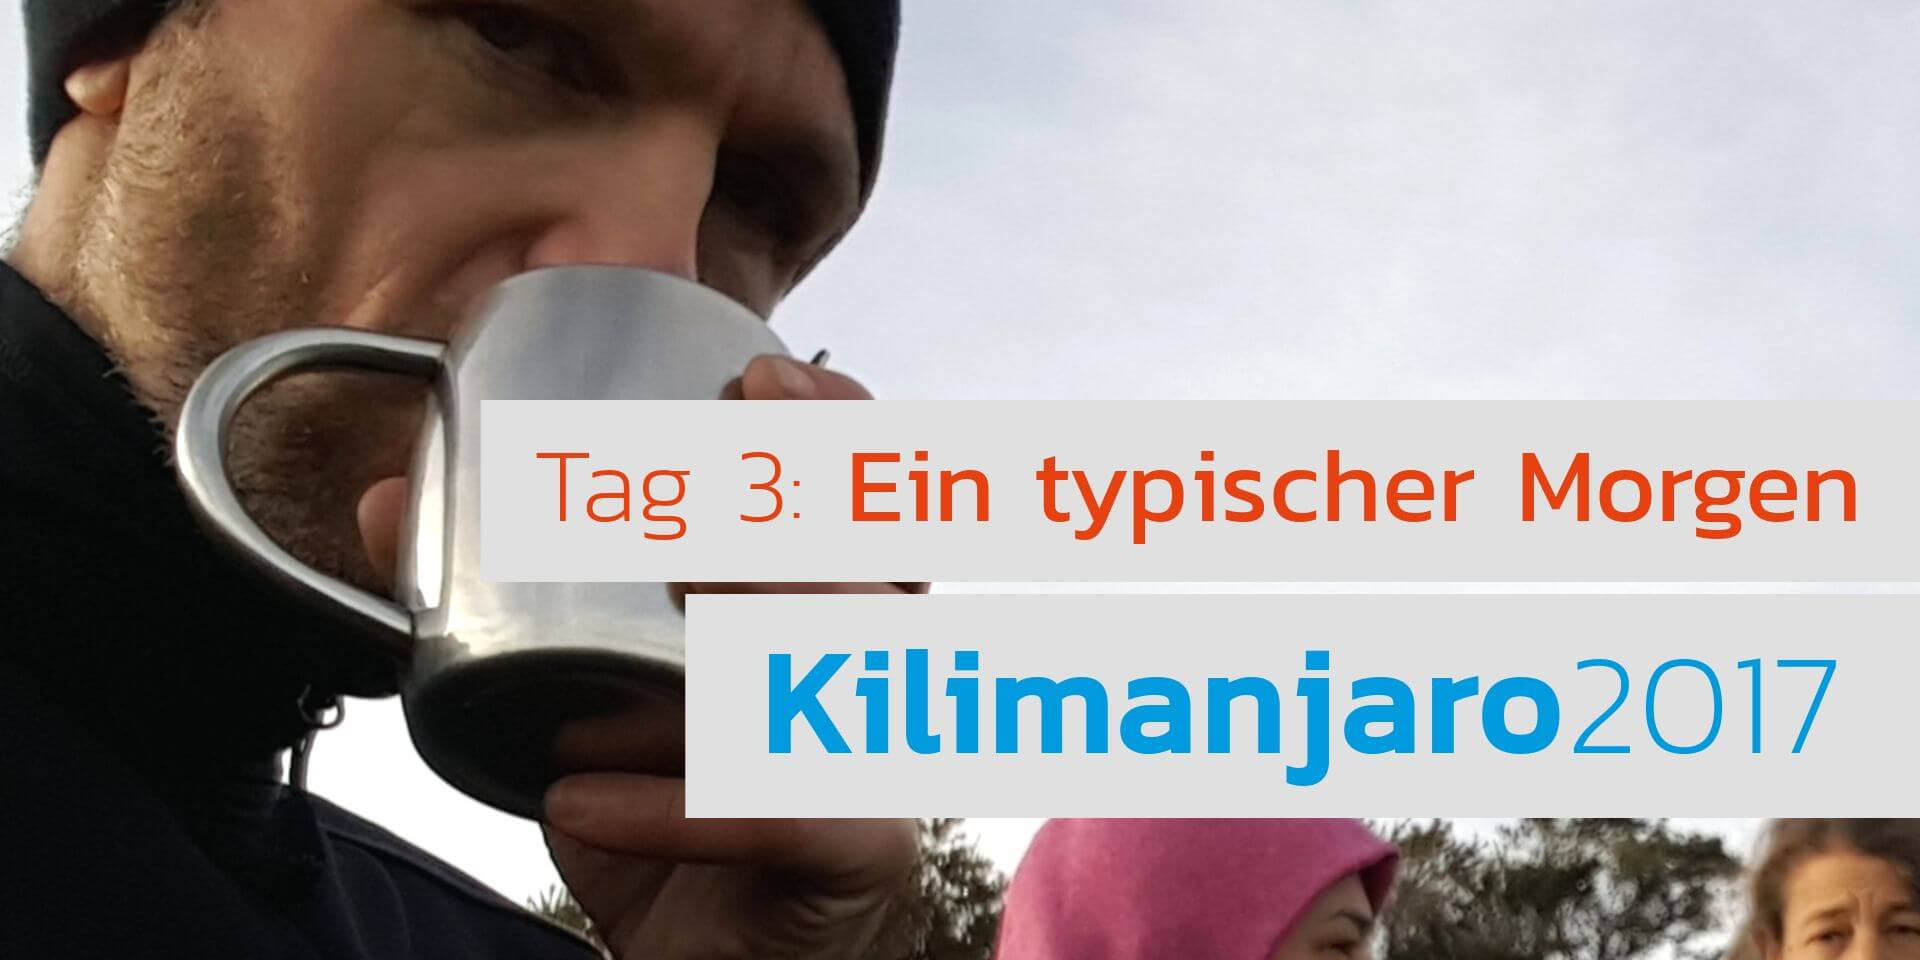 Video - Ein typischer Morgen am Kilimanjaro - Seven Summits for Help